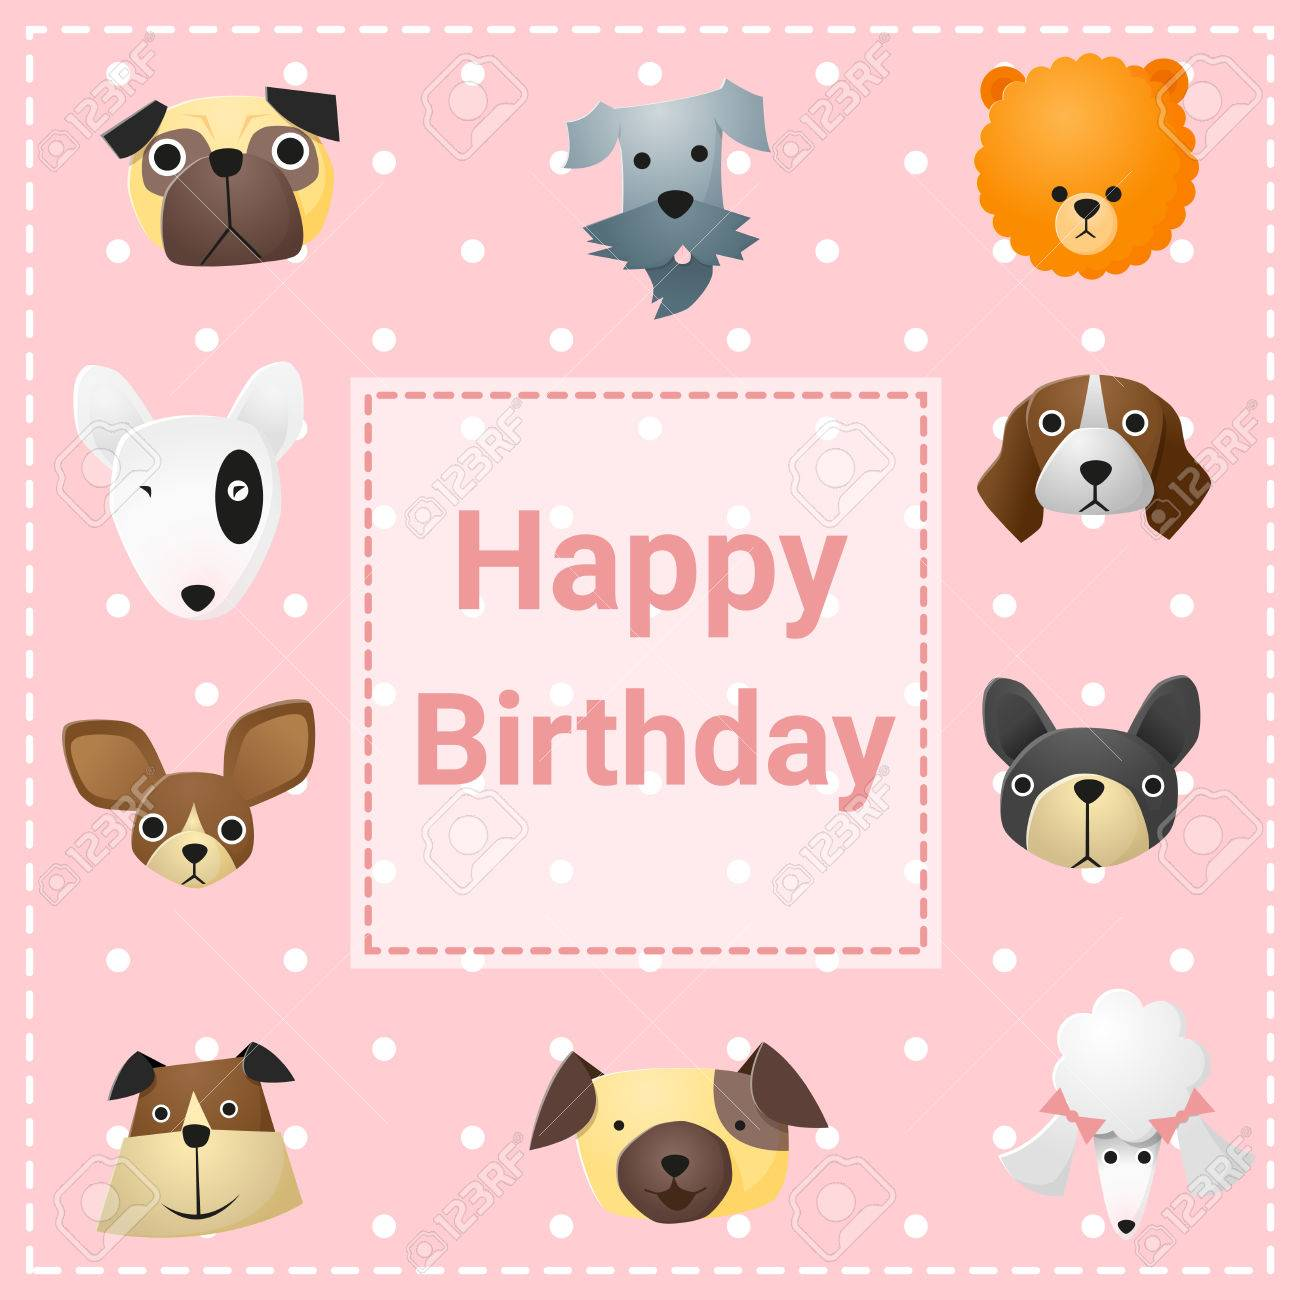 Cute Happy Birthday Card With Funny Dogs Vector Illustration Stock